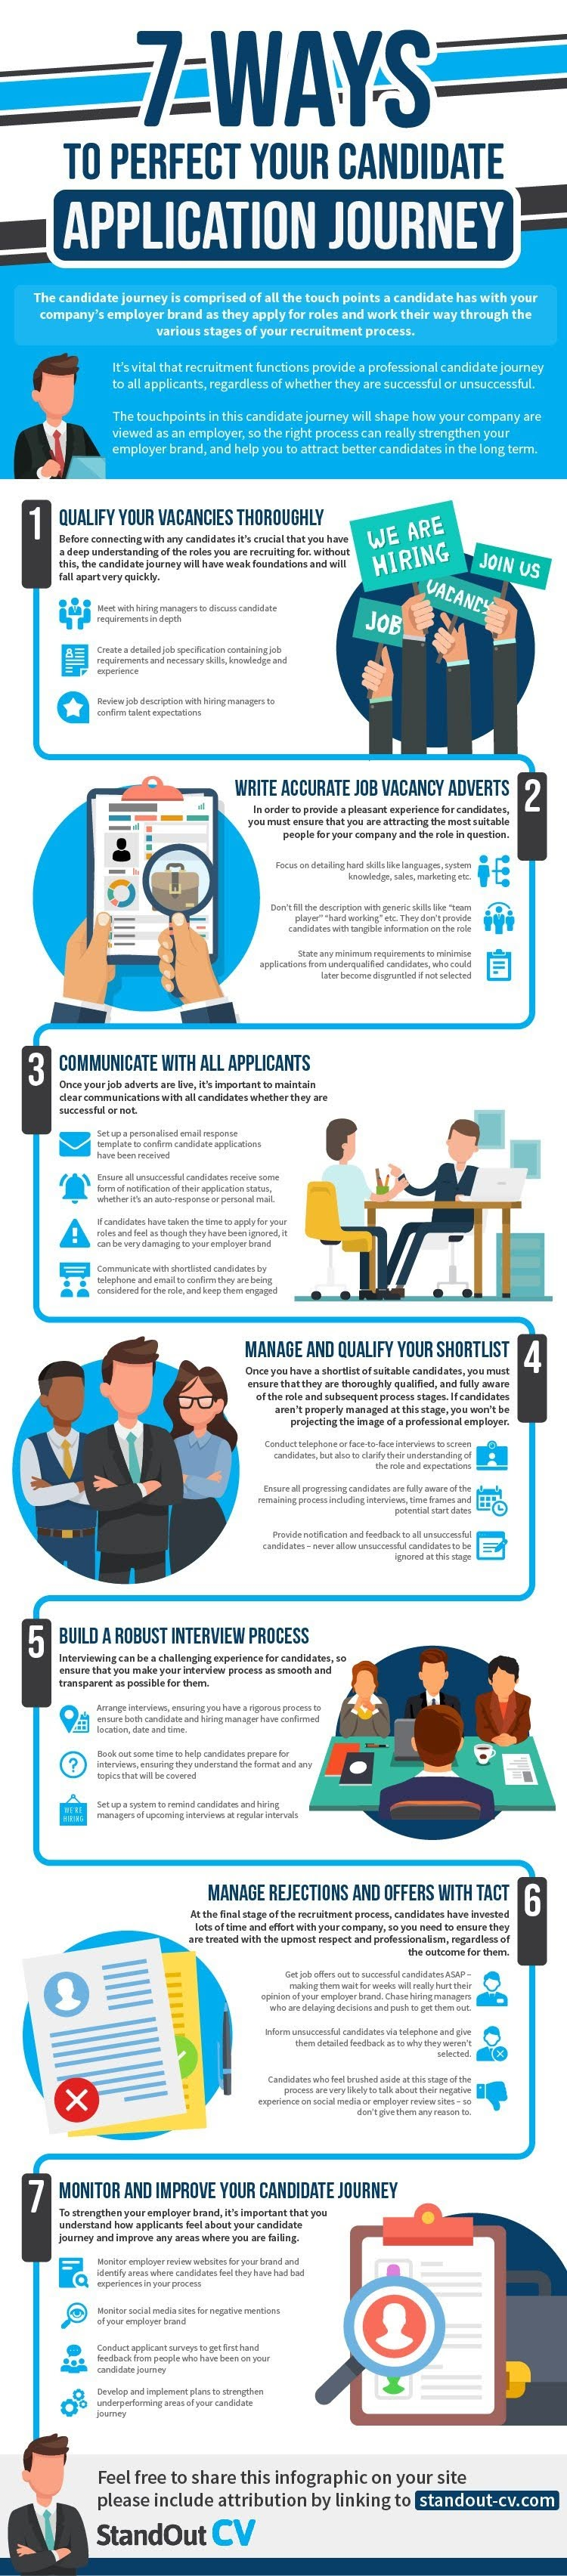 7 Ways to Perfect Your Candidate Application Journey #infographic